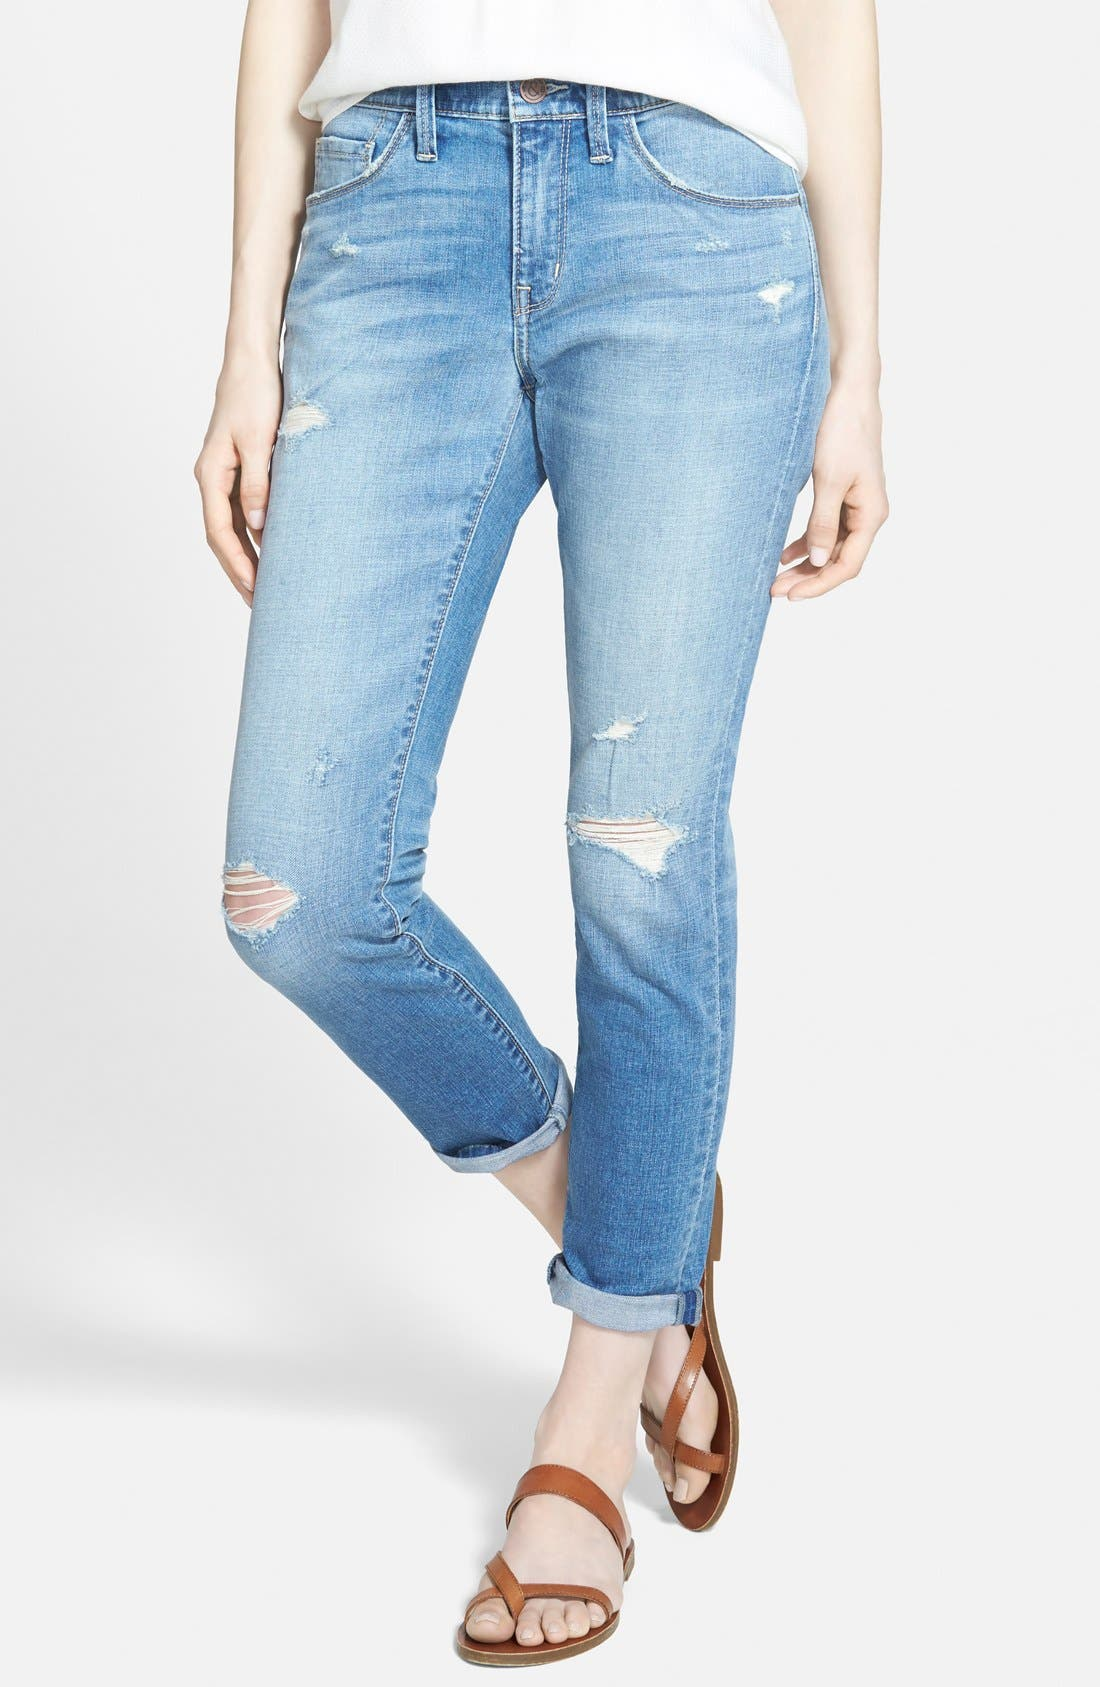 Alternate Image 1 Selected - Treasure&Bond Crop Boyfriend Skinny Jeans (Light Destroy)